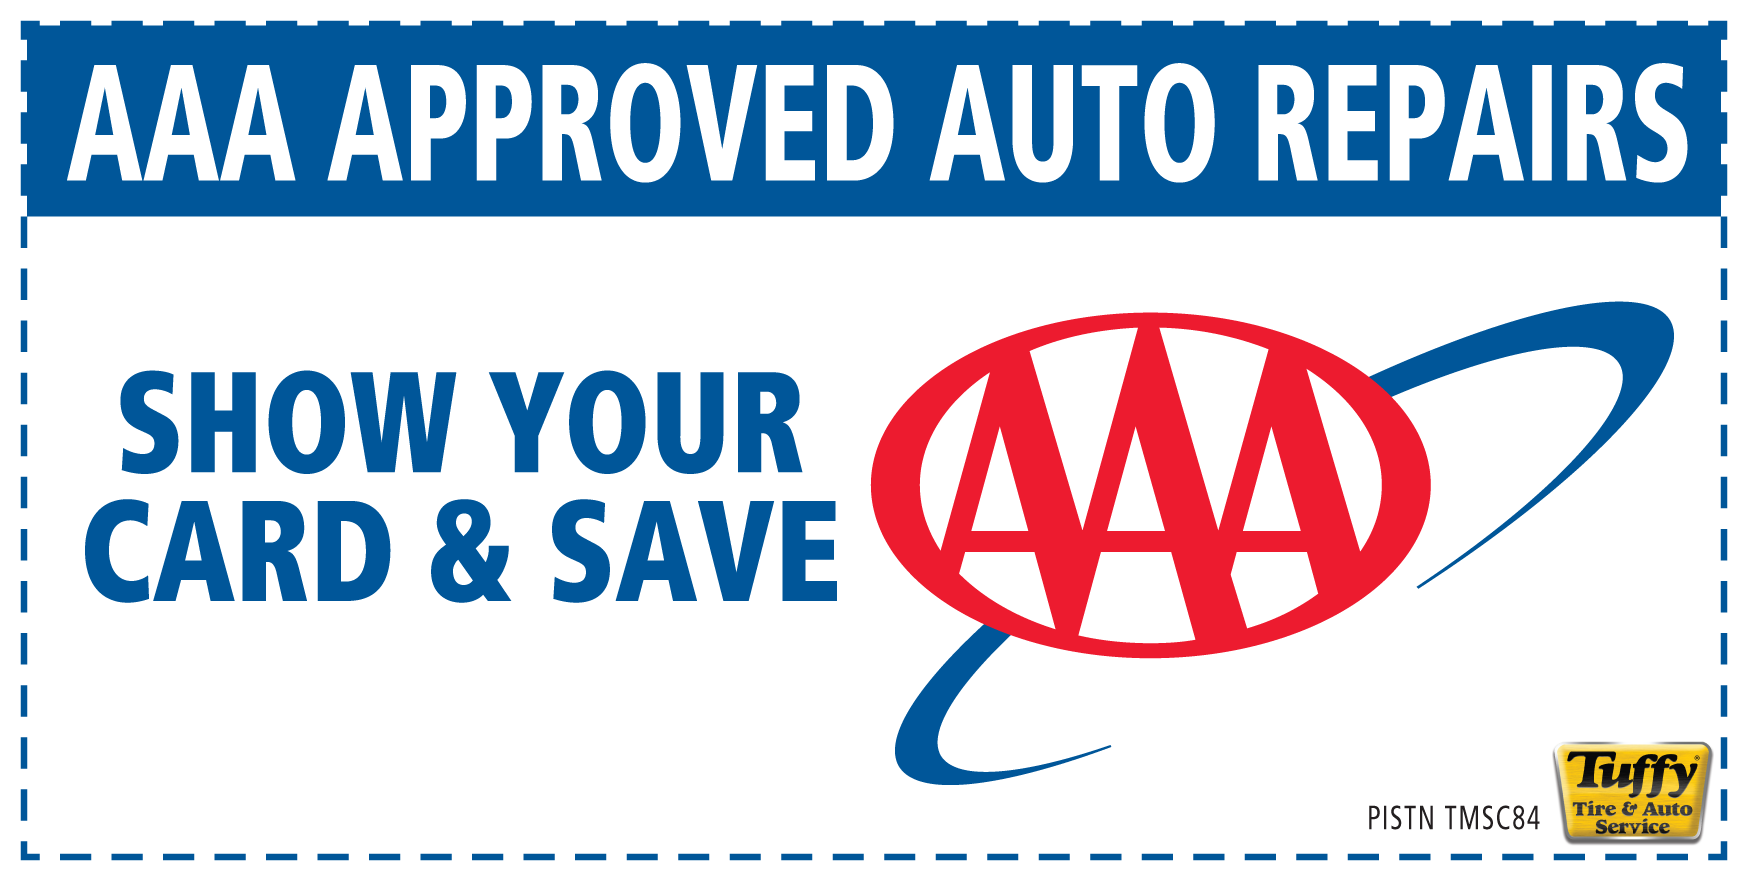 AAA Approved Auto Repairs (Show Card & Save)